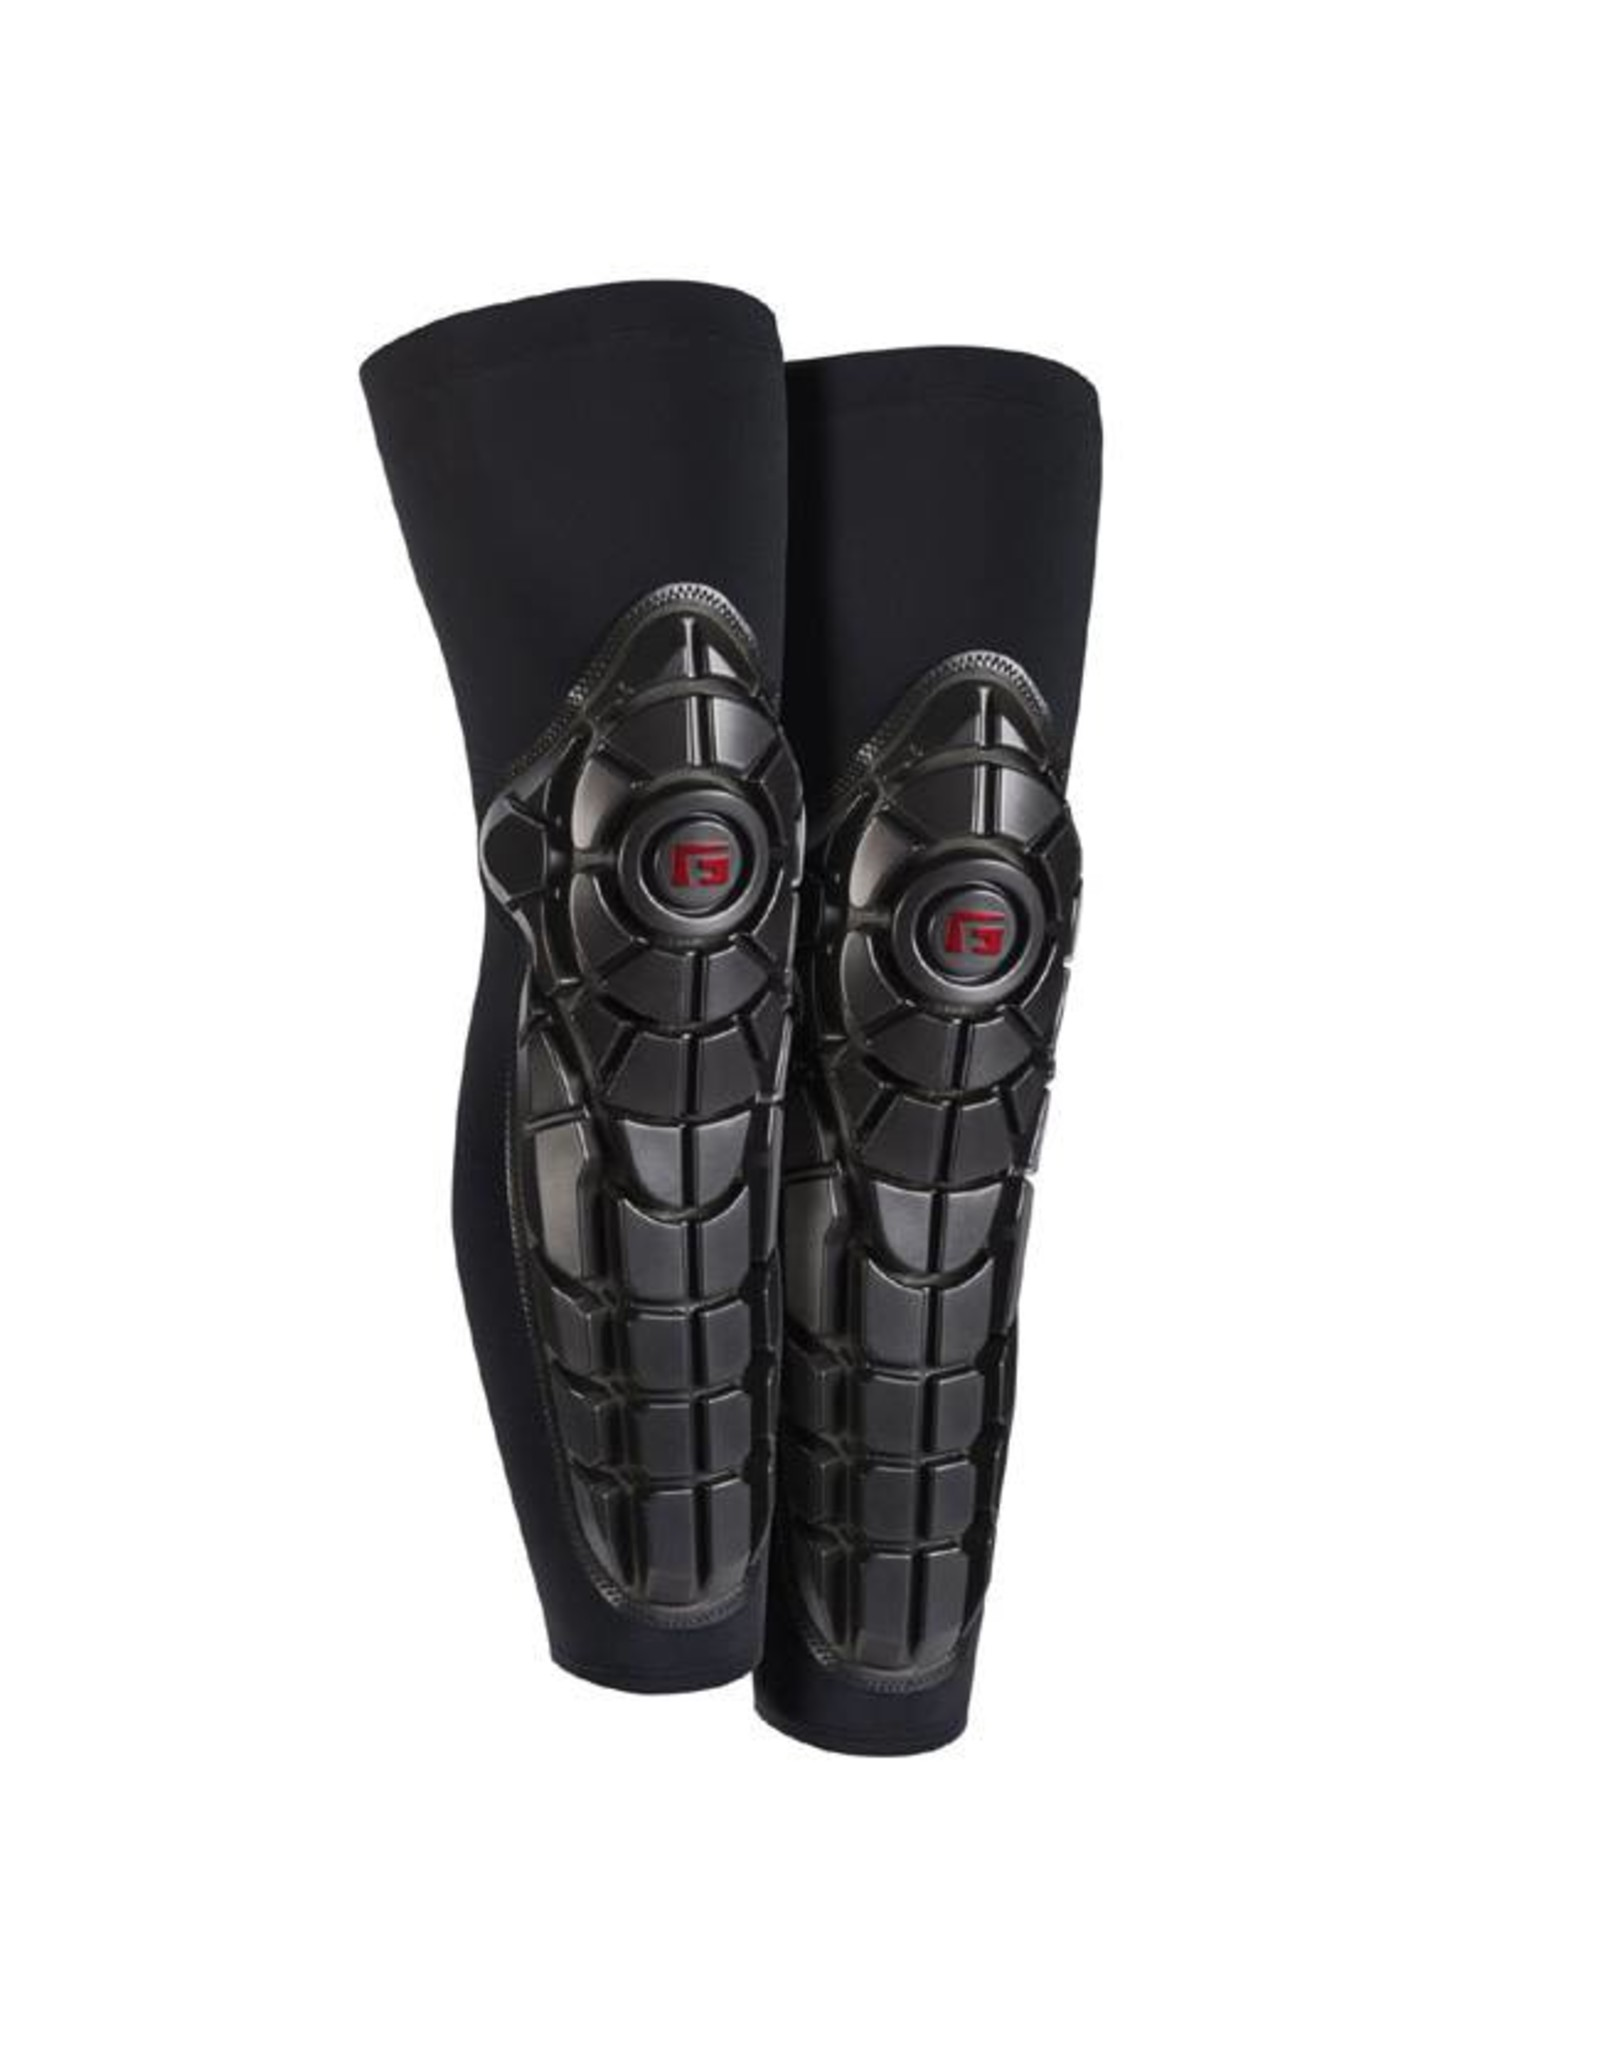 G-Form G-Form Pro-X Knee-Shin Combo Guard: Black, XS